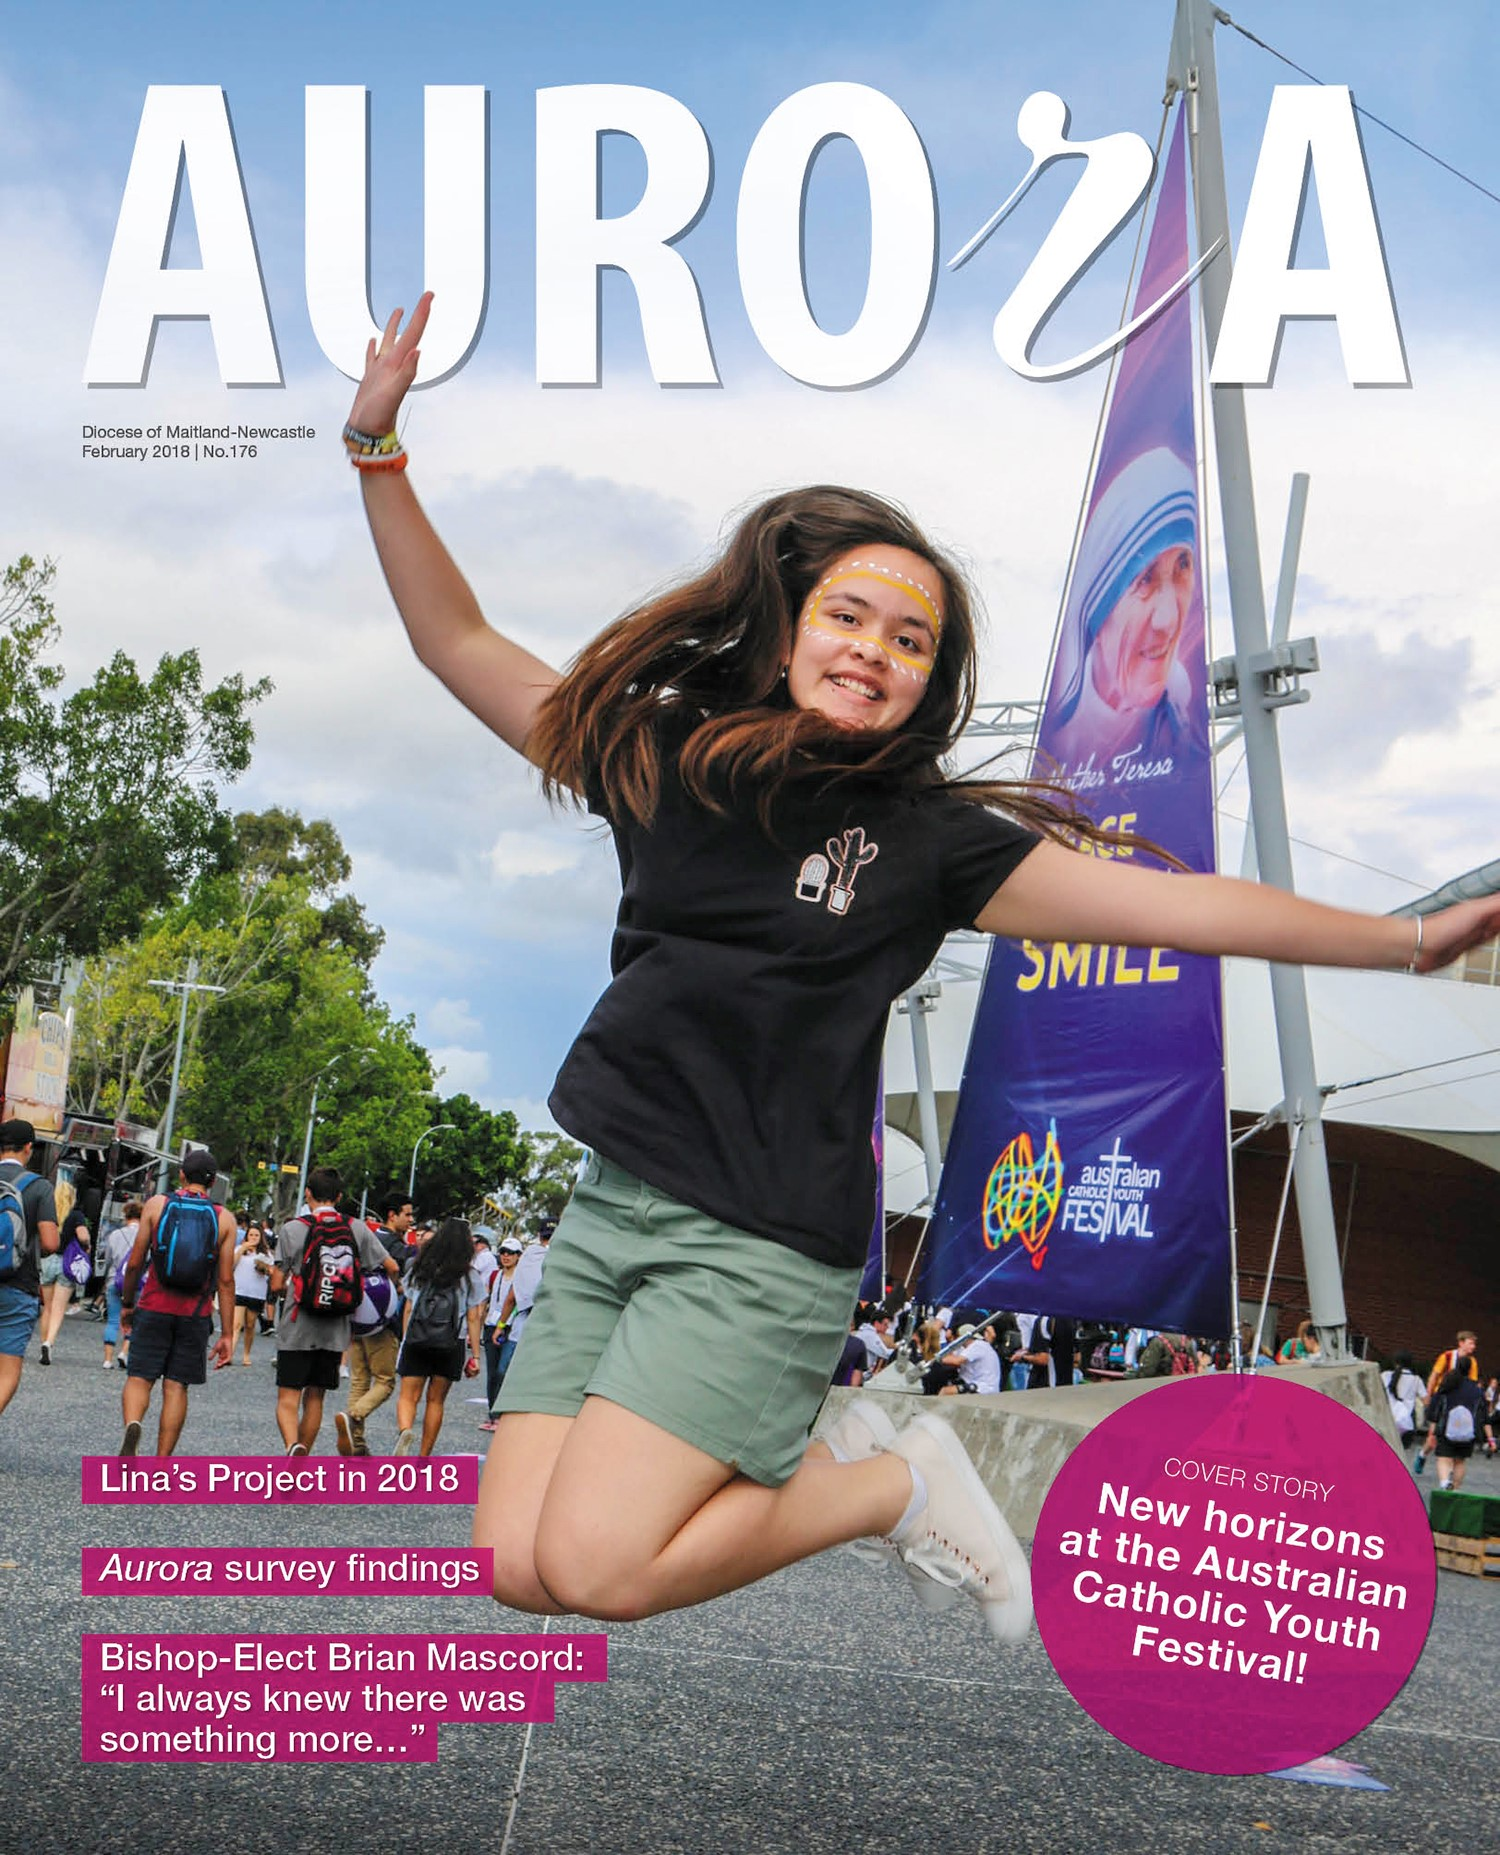 Aurora February 2018 Cover Image